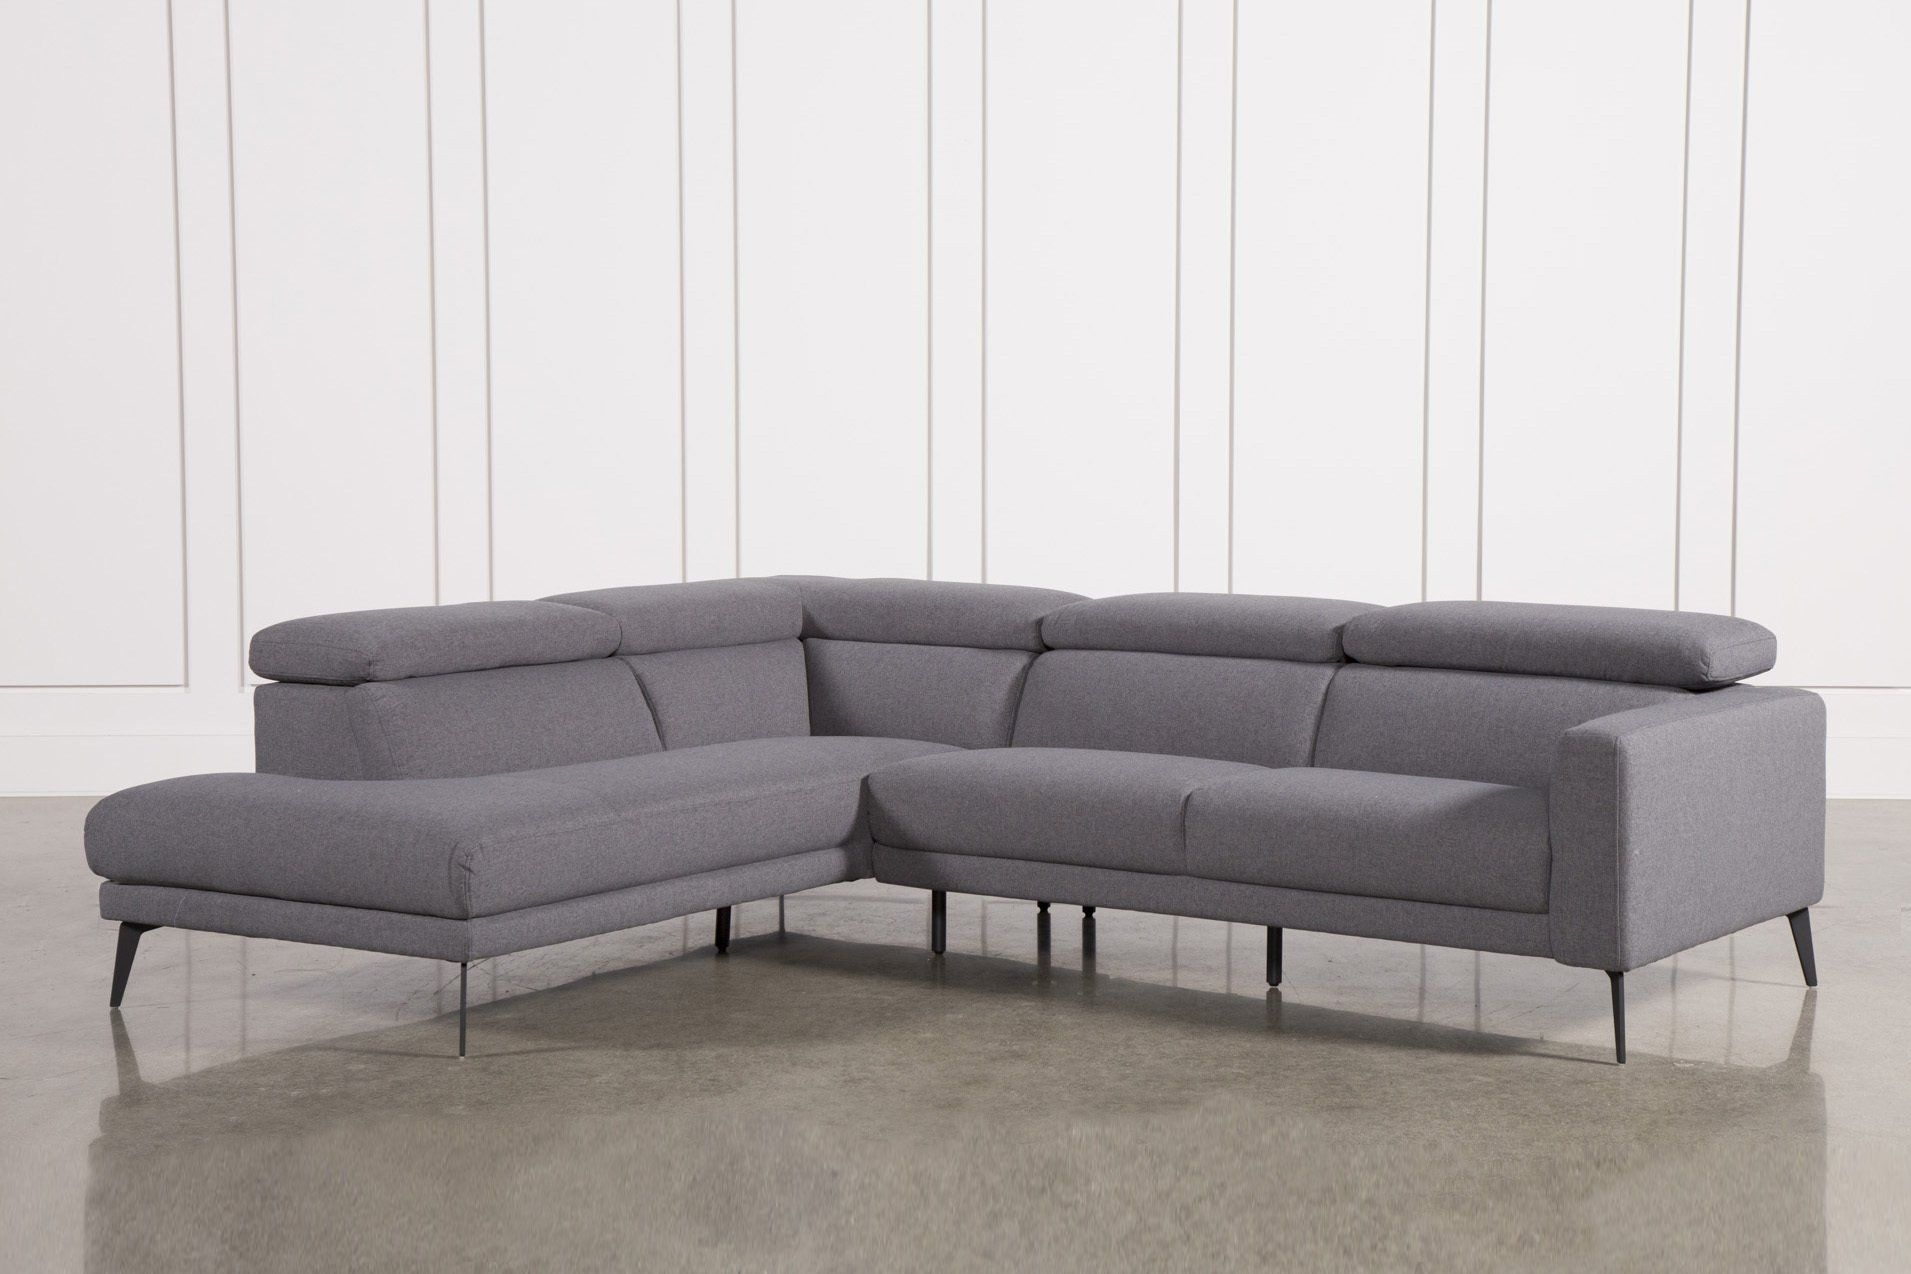 Ikea - Norsborg, Sofa, Edum Beige, , Large Or Small, Color within Lucy Grey 2 Piece Sectionals With Laf Chaise (Image 8 of 30)